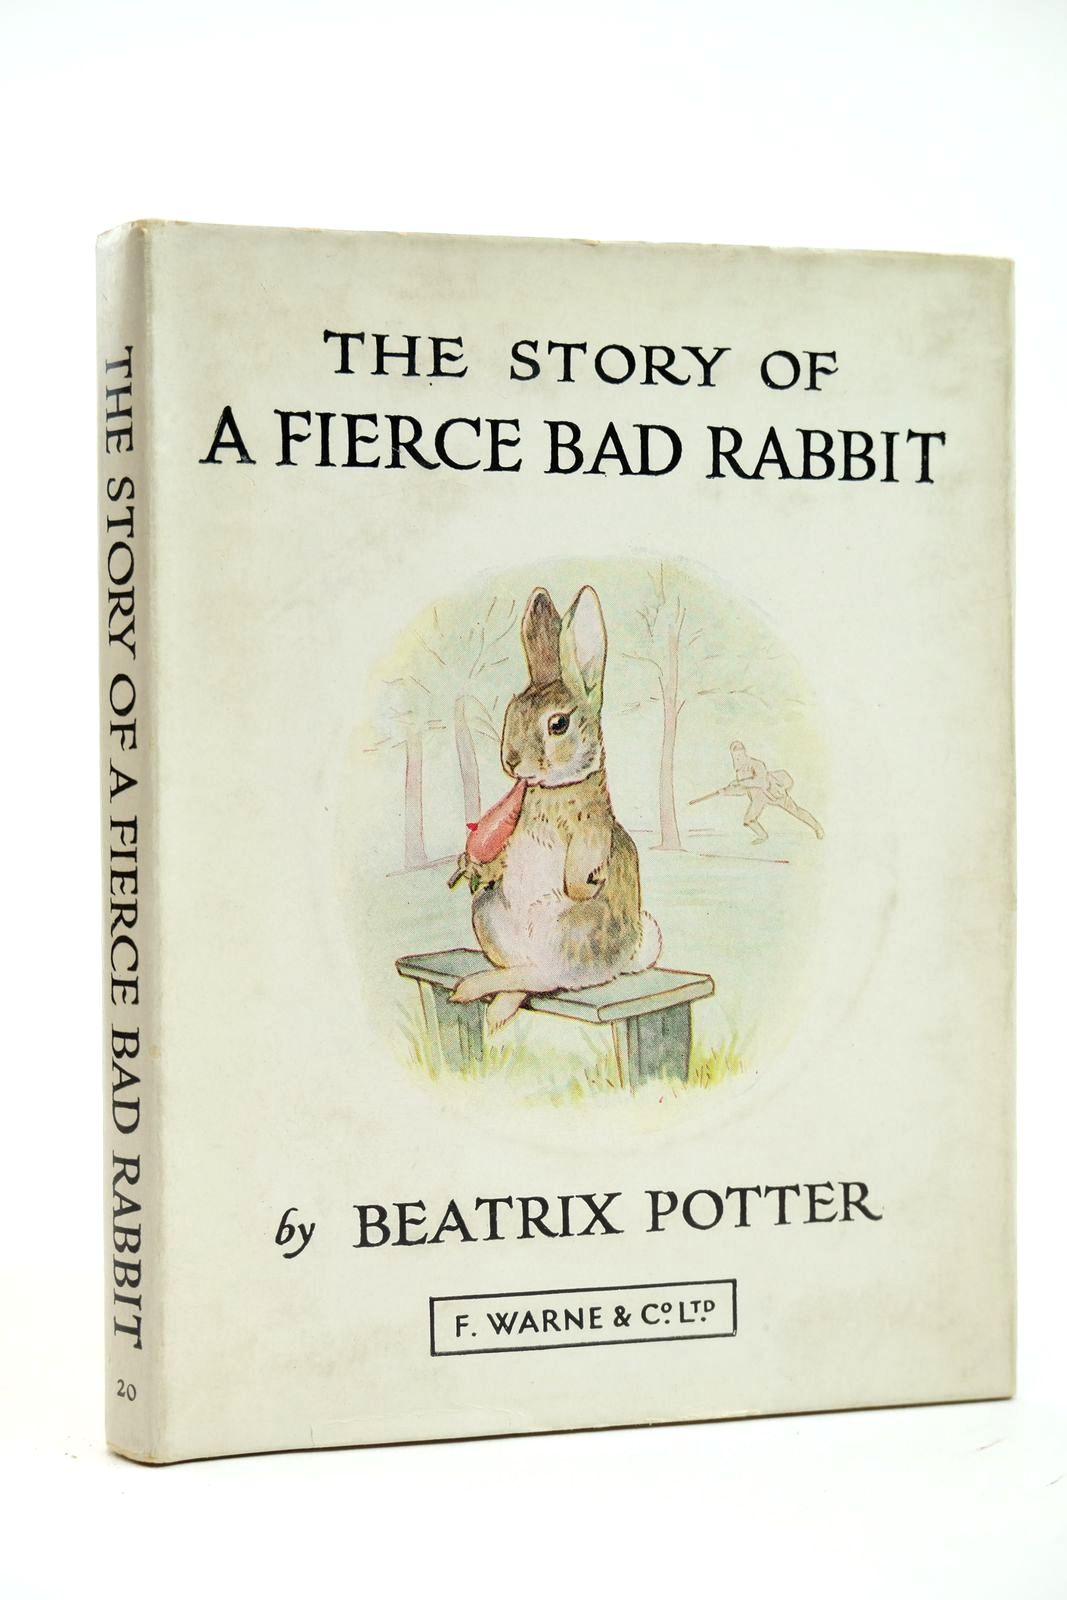 Photo of THE STORY OF A FIERCE BAD RABBIT written by Potter, Beatrix published by Frederick Warne & Co Ltd. (STOCK CODE: 2131898)  for sale by Stella & Rose's Books